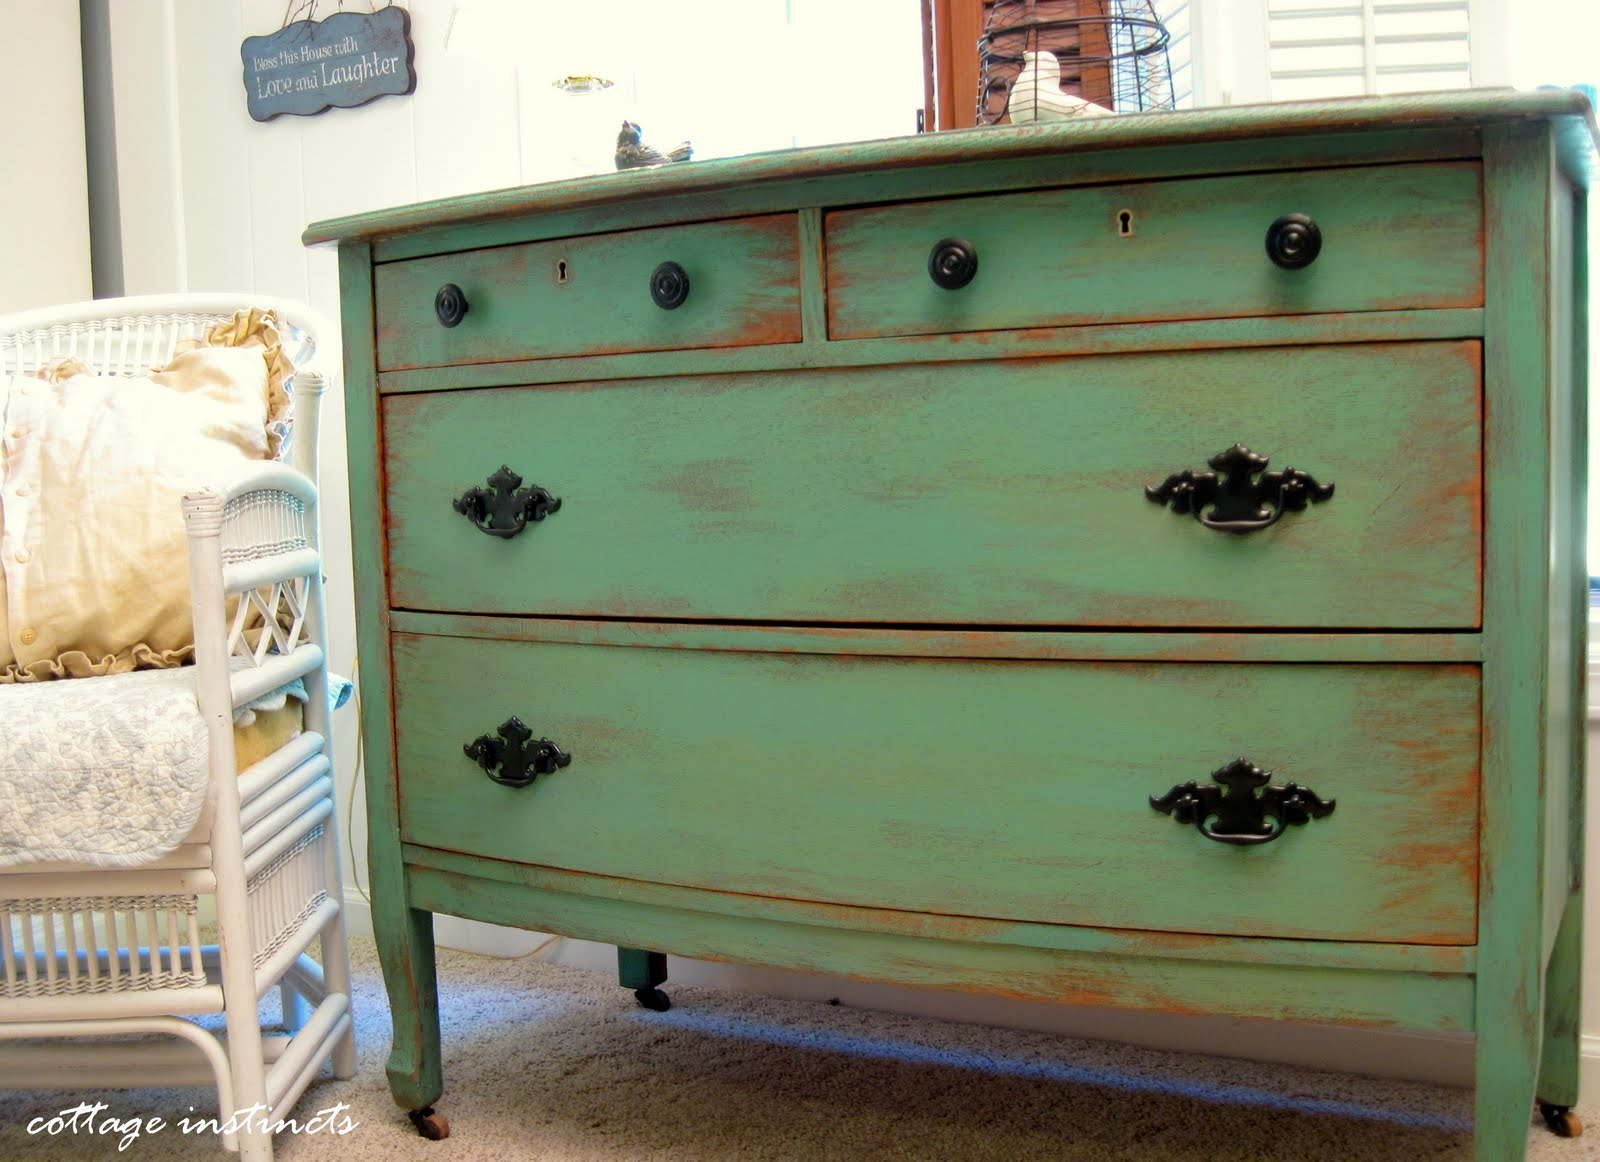 Cottage instincts how i paint and distress a dresser in for Distressed furniture